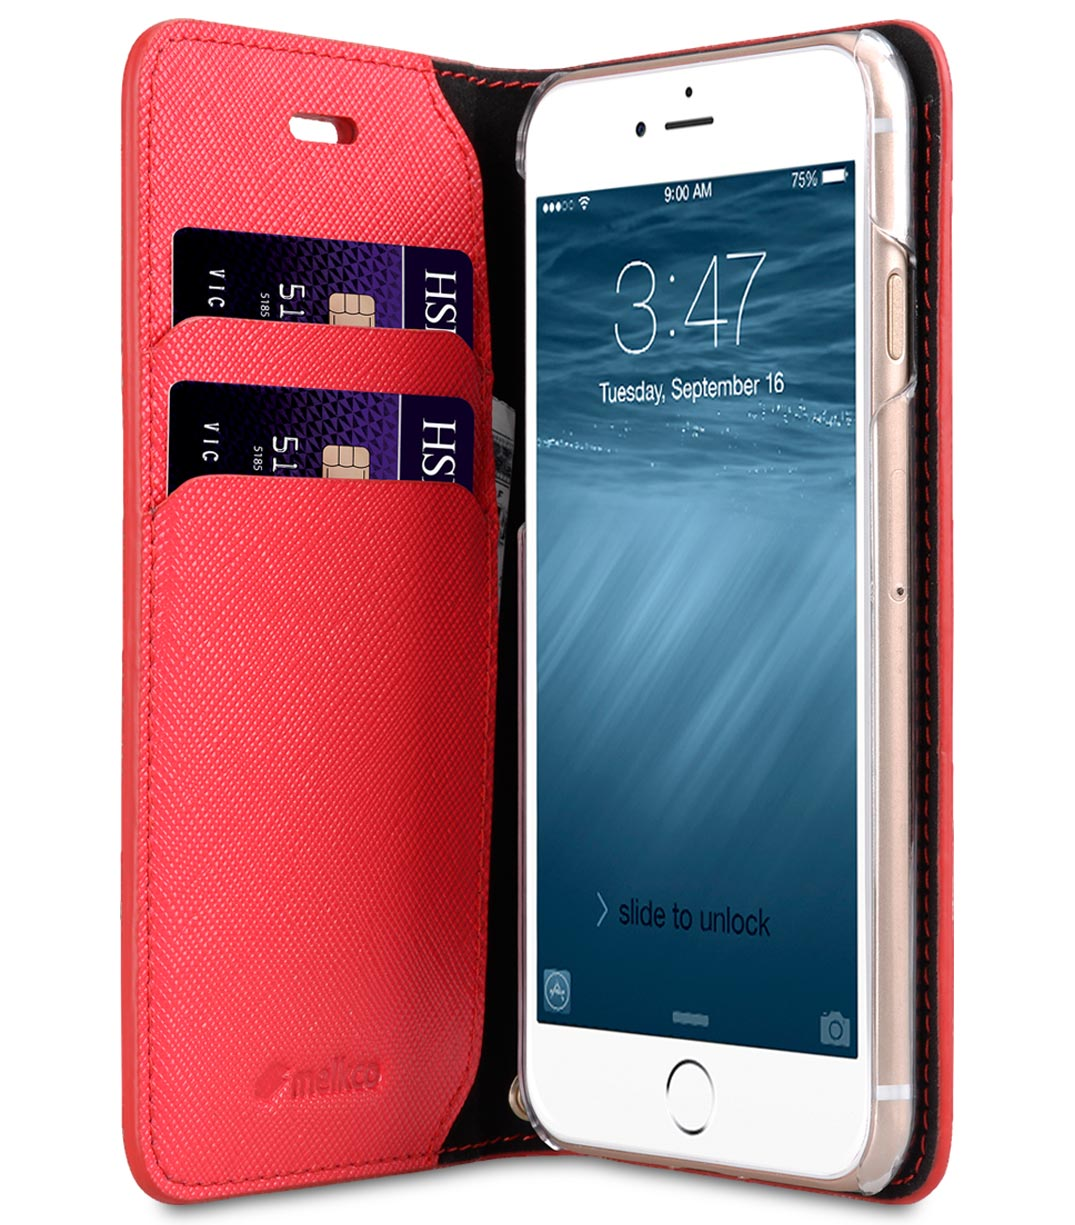 Melkco Fashion Cocktail Series slim Filp Case for Apple iPhone 7 / 8 (4.7') - (Fluorescent Red)